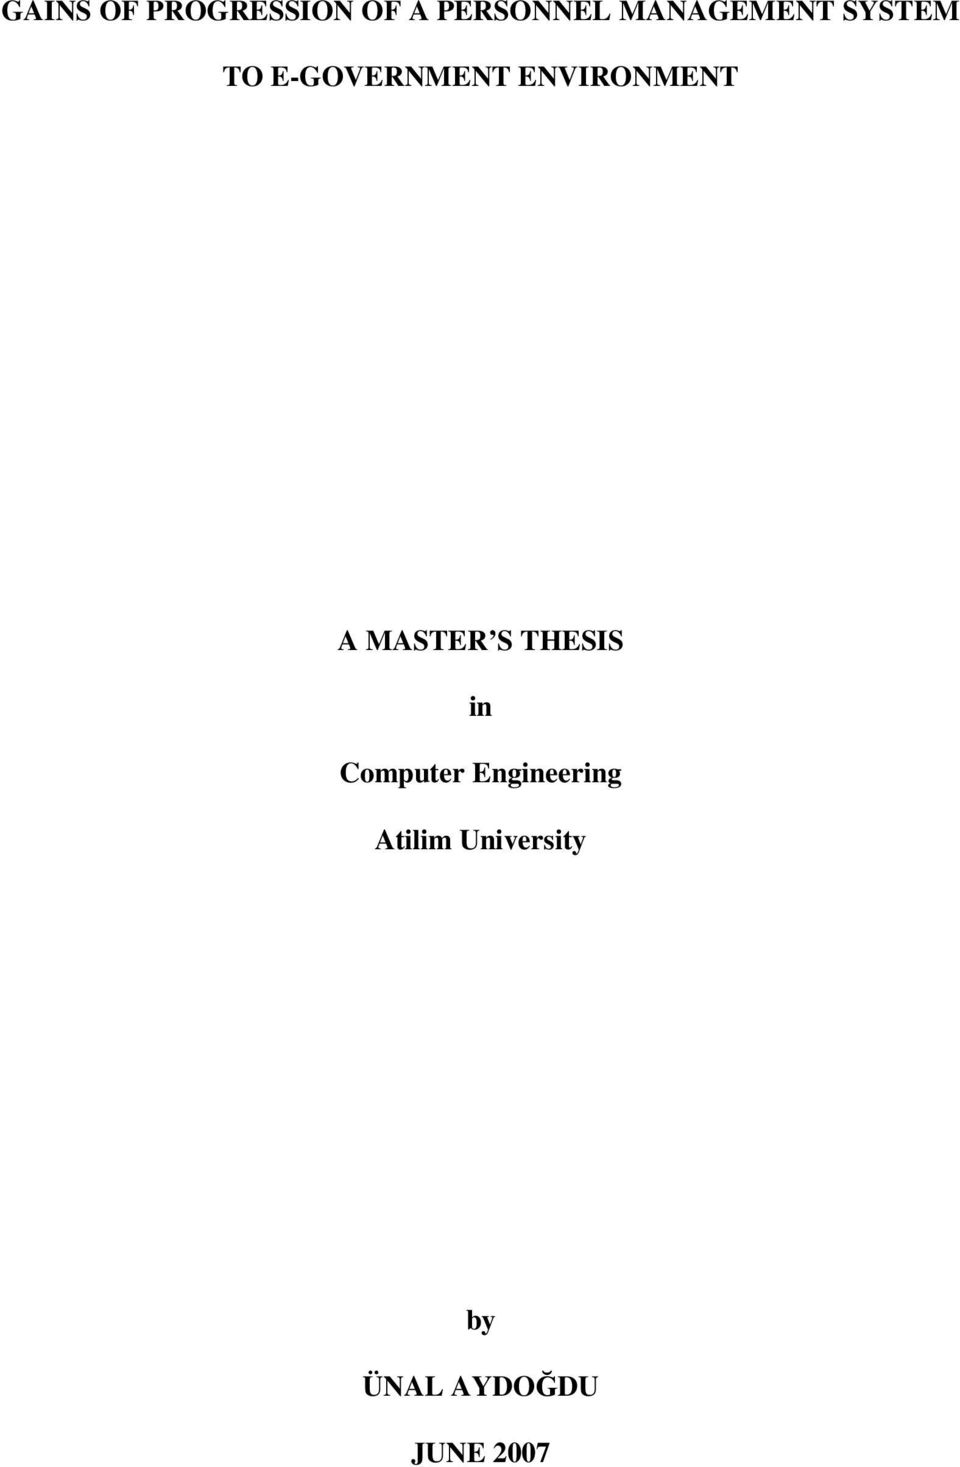 ENVIRONMENT A MASTER S THESIS in Computer